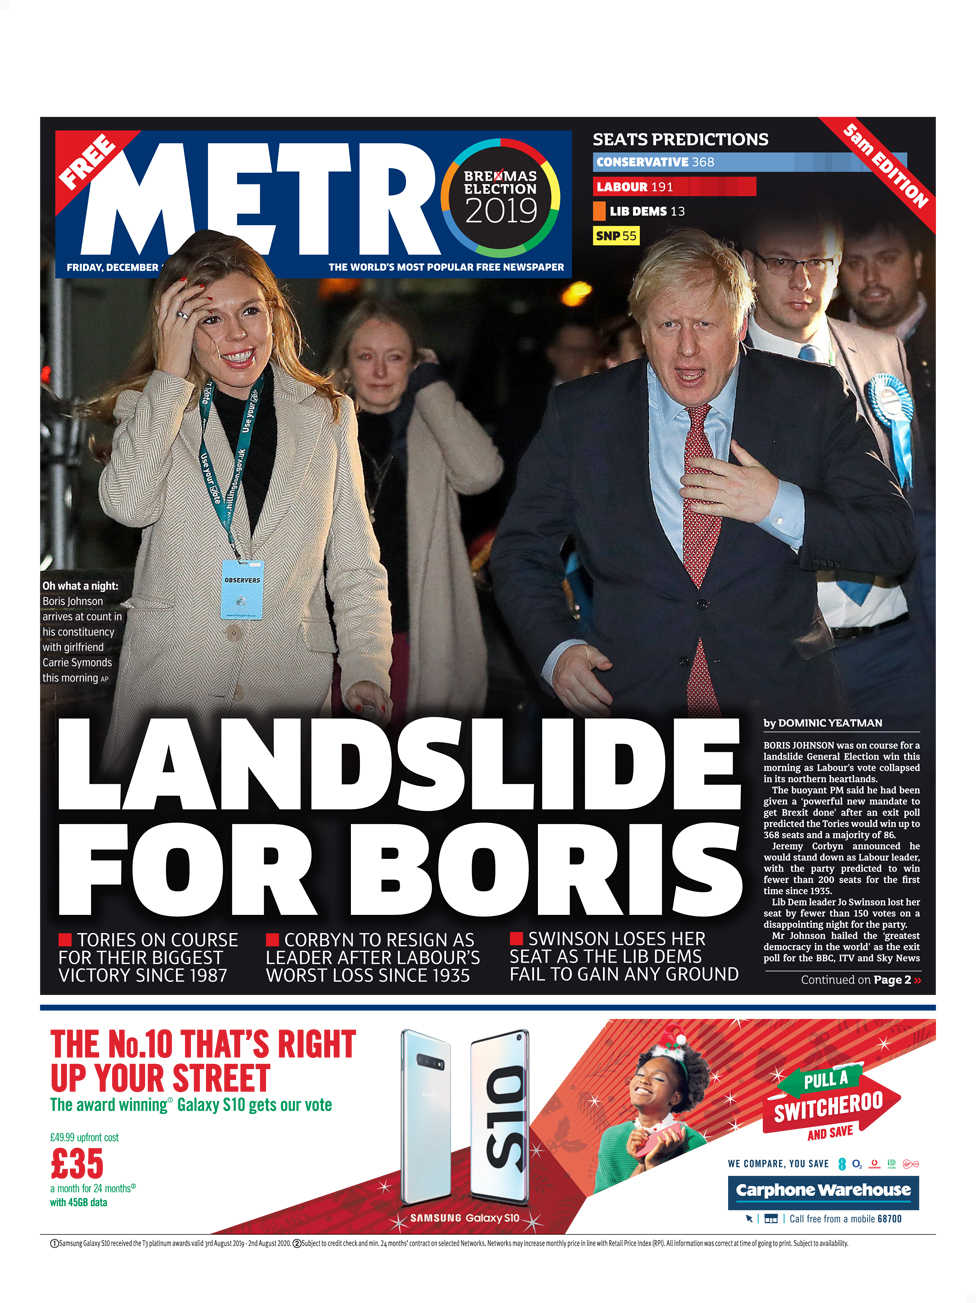 Friday's Metro front page (late edition)